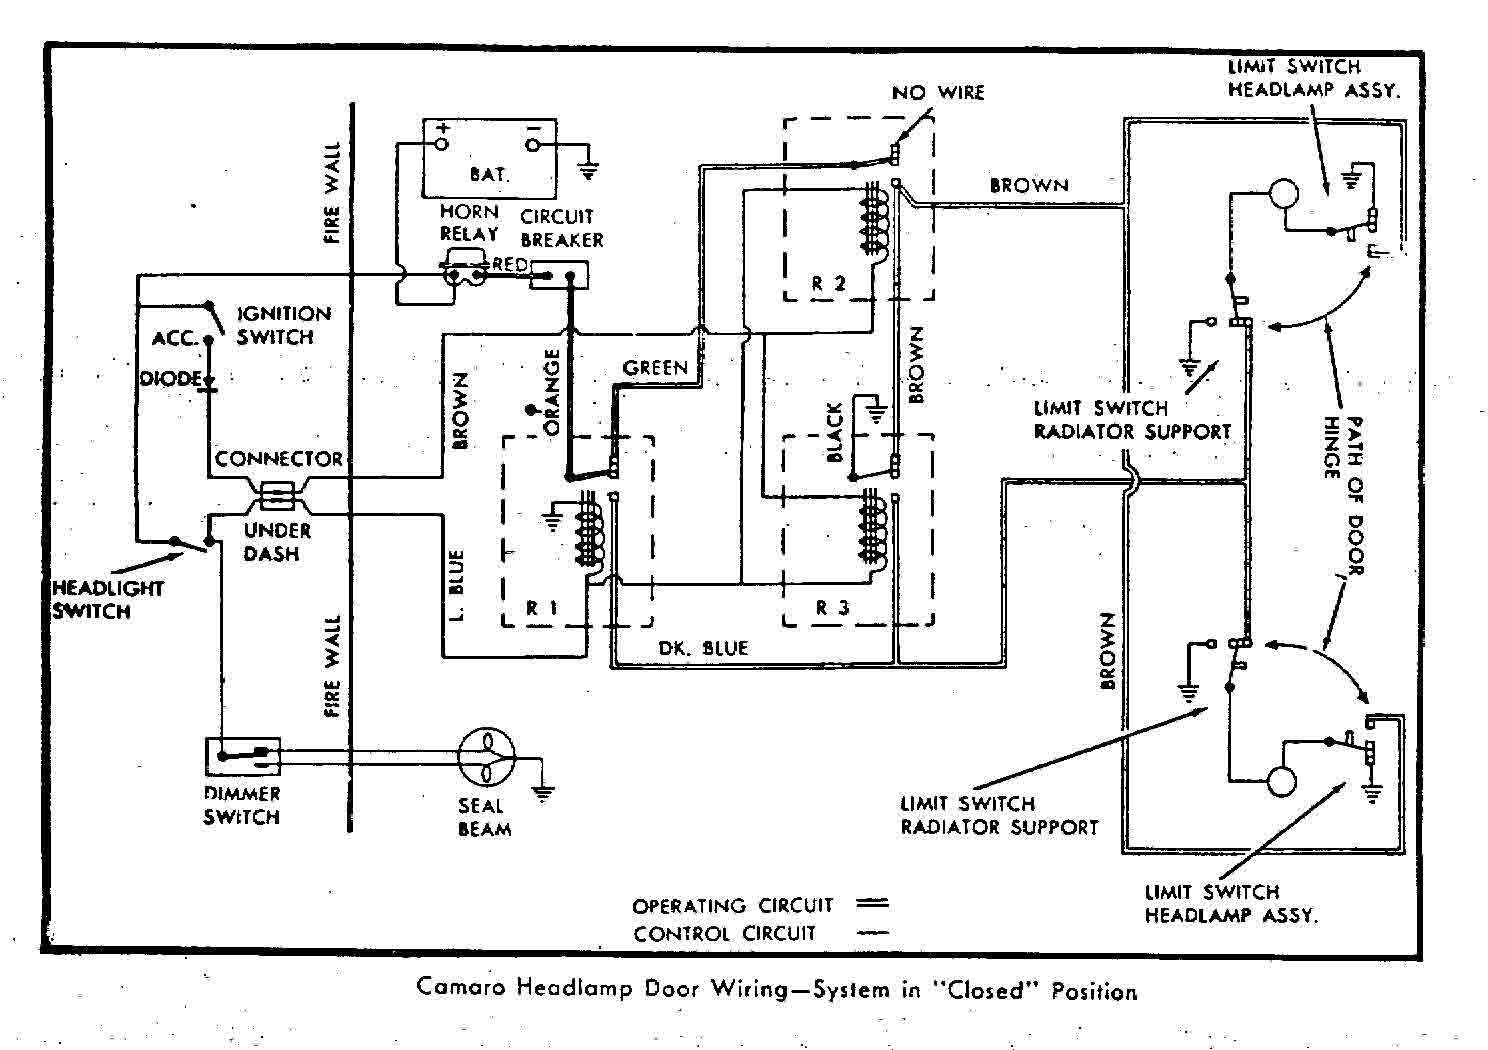 1969 Camaro Fuse Box Trusted Wiring Diagram 2000 Firebird 1967 Schematic Block And Pontiac